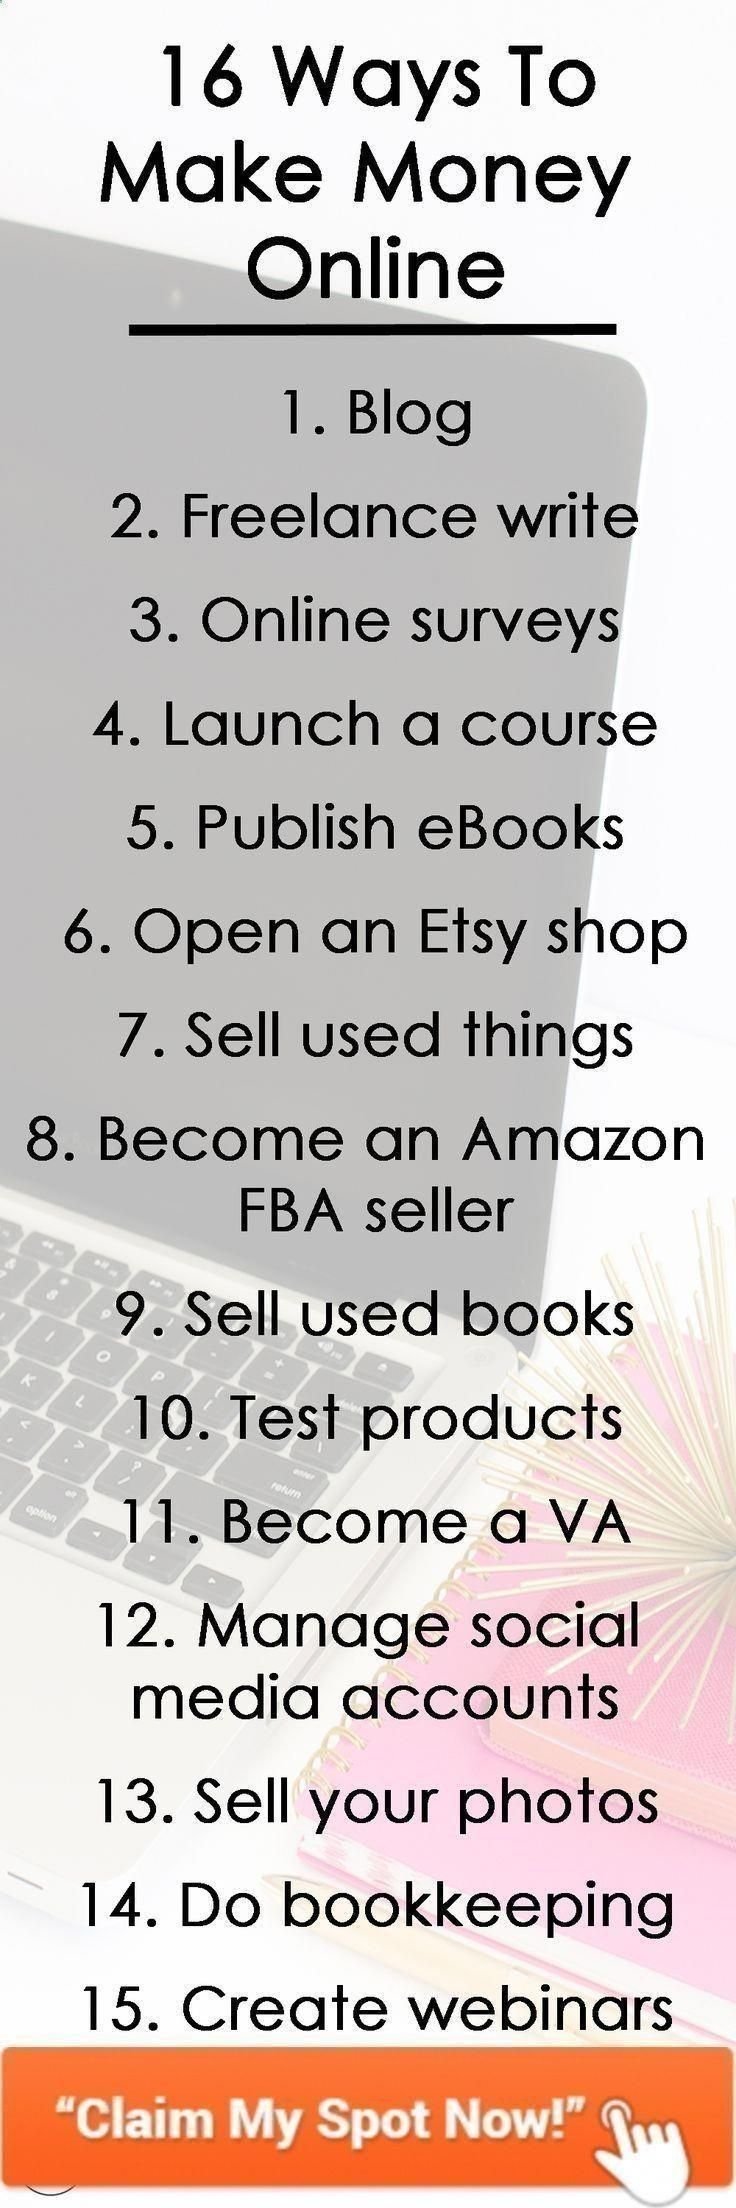 13+ Tremendous How To Make Money On The Internet Ideas – Extra Cash Online Ideas